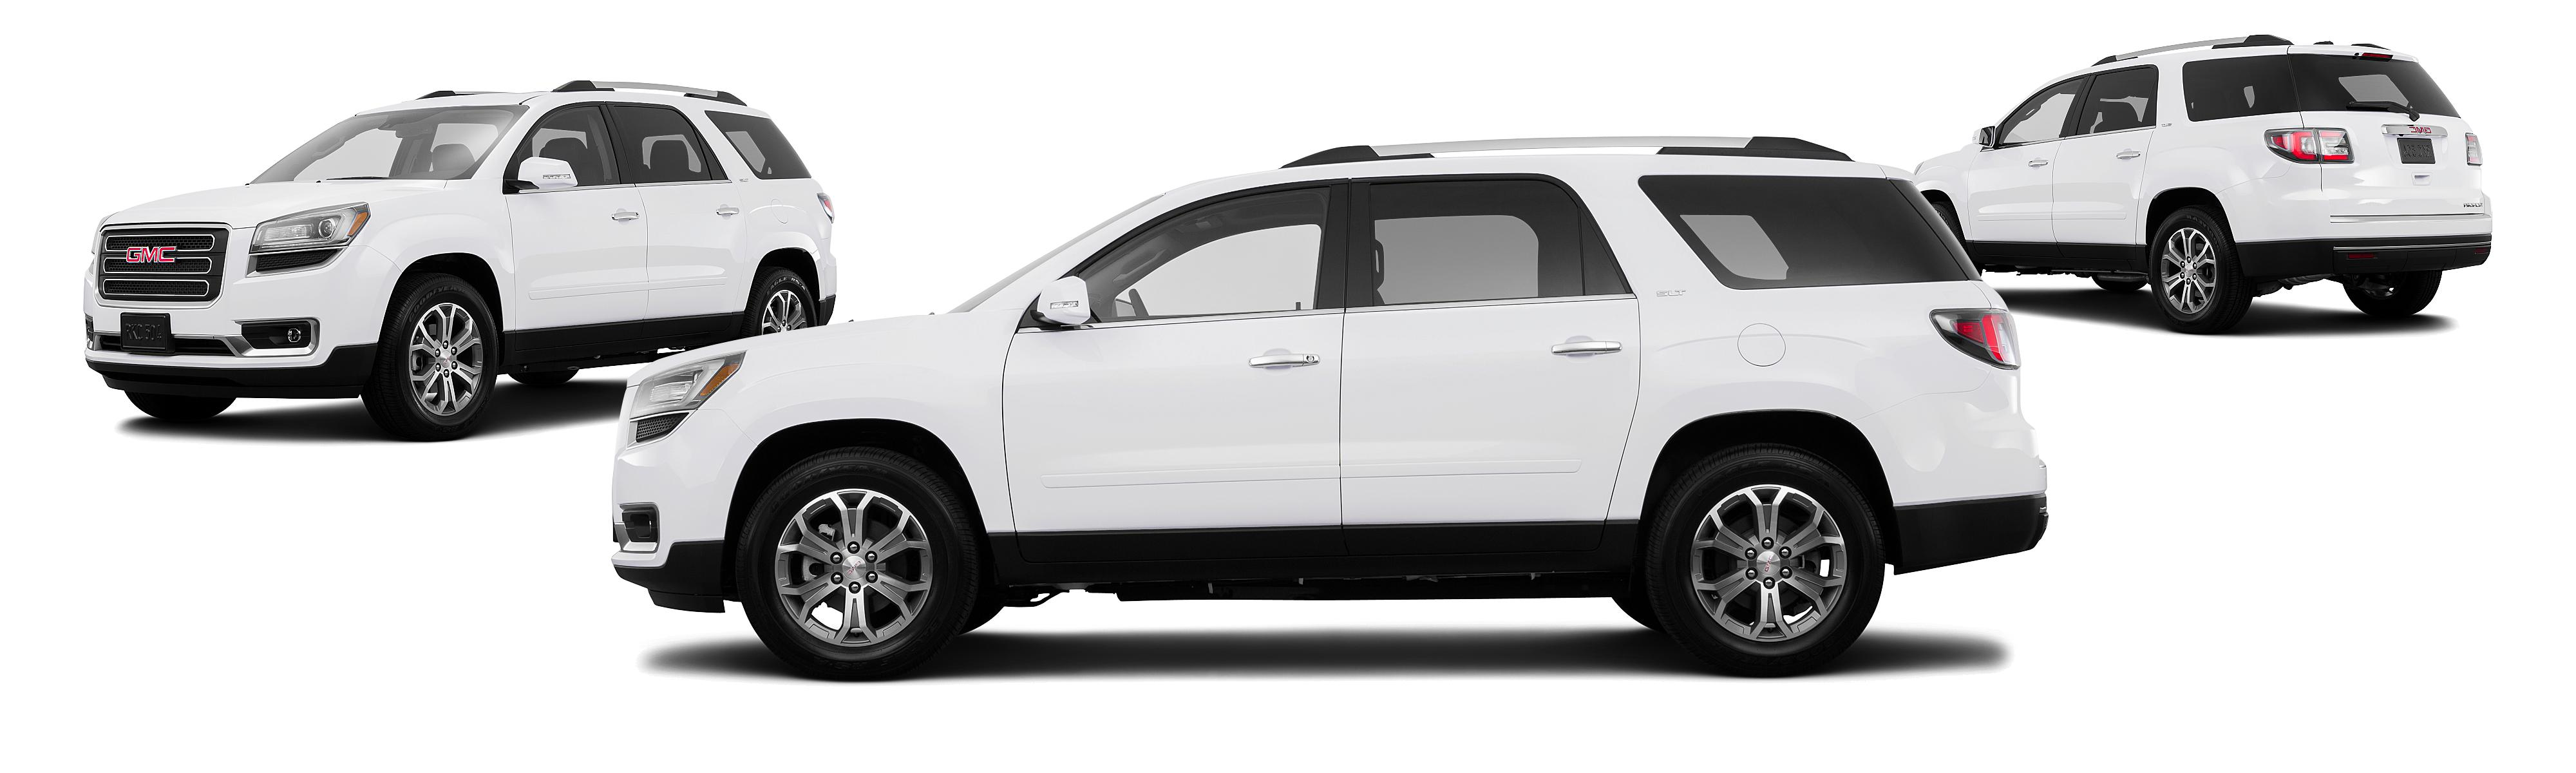 htm mall suvs acadia the gmc in new darling me s dealership auto